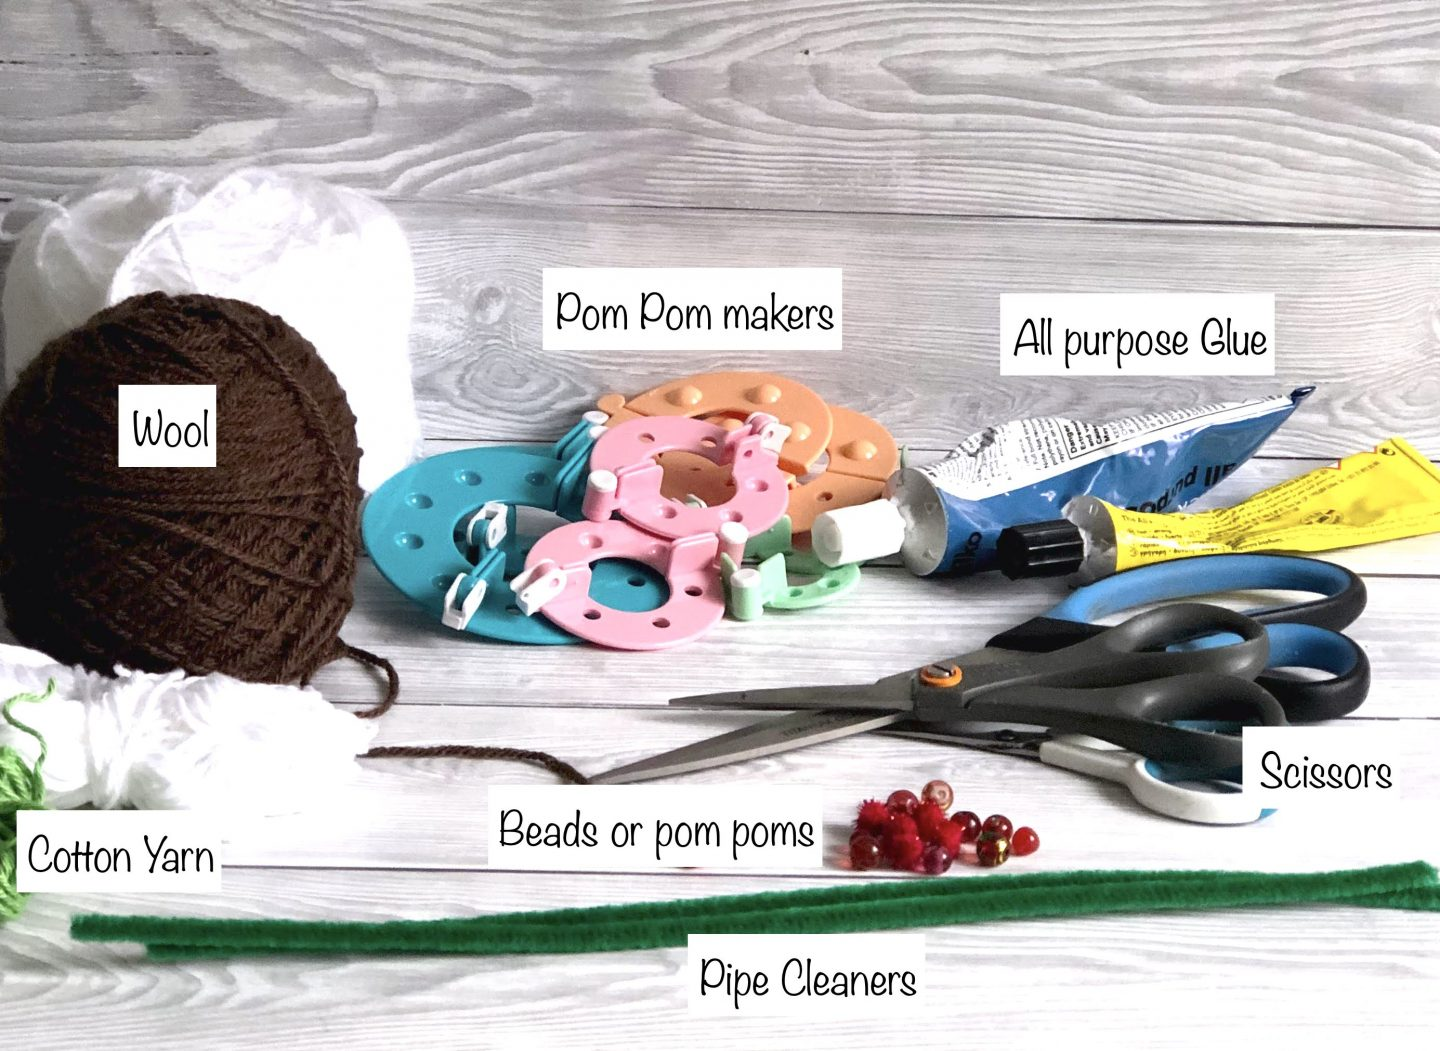 Materials for pom pom pudding